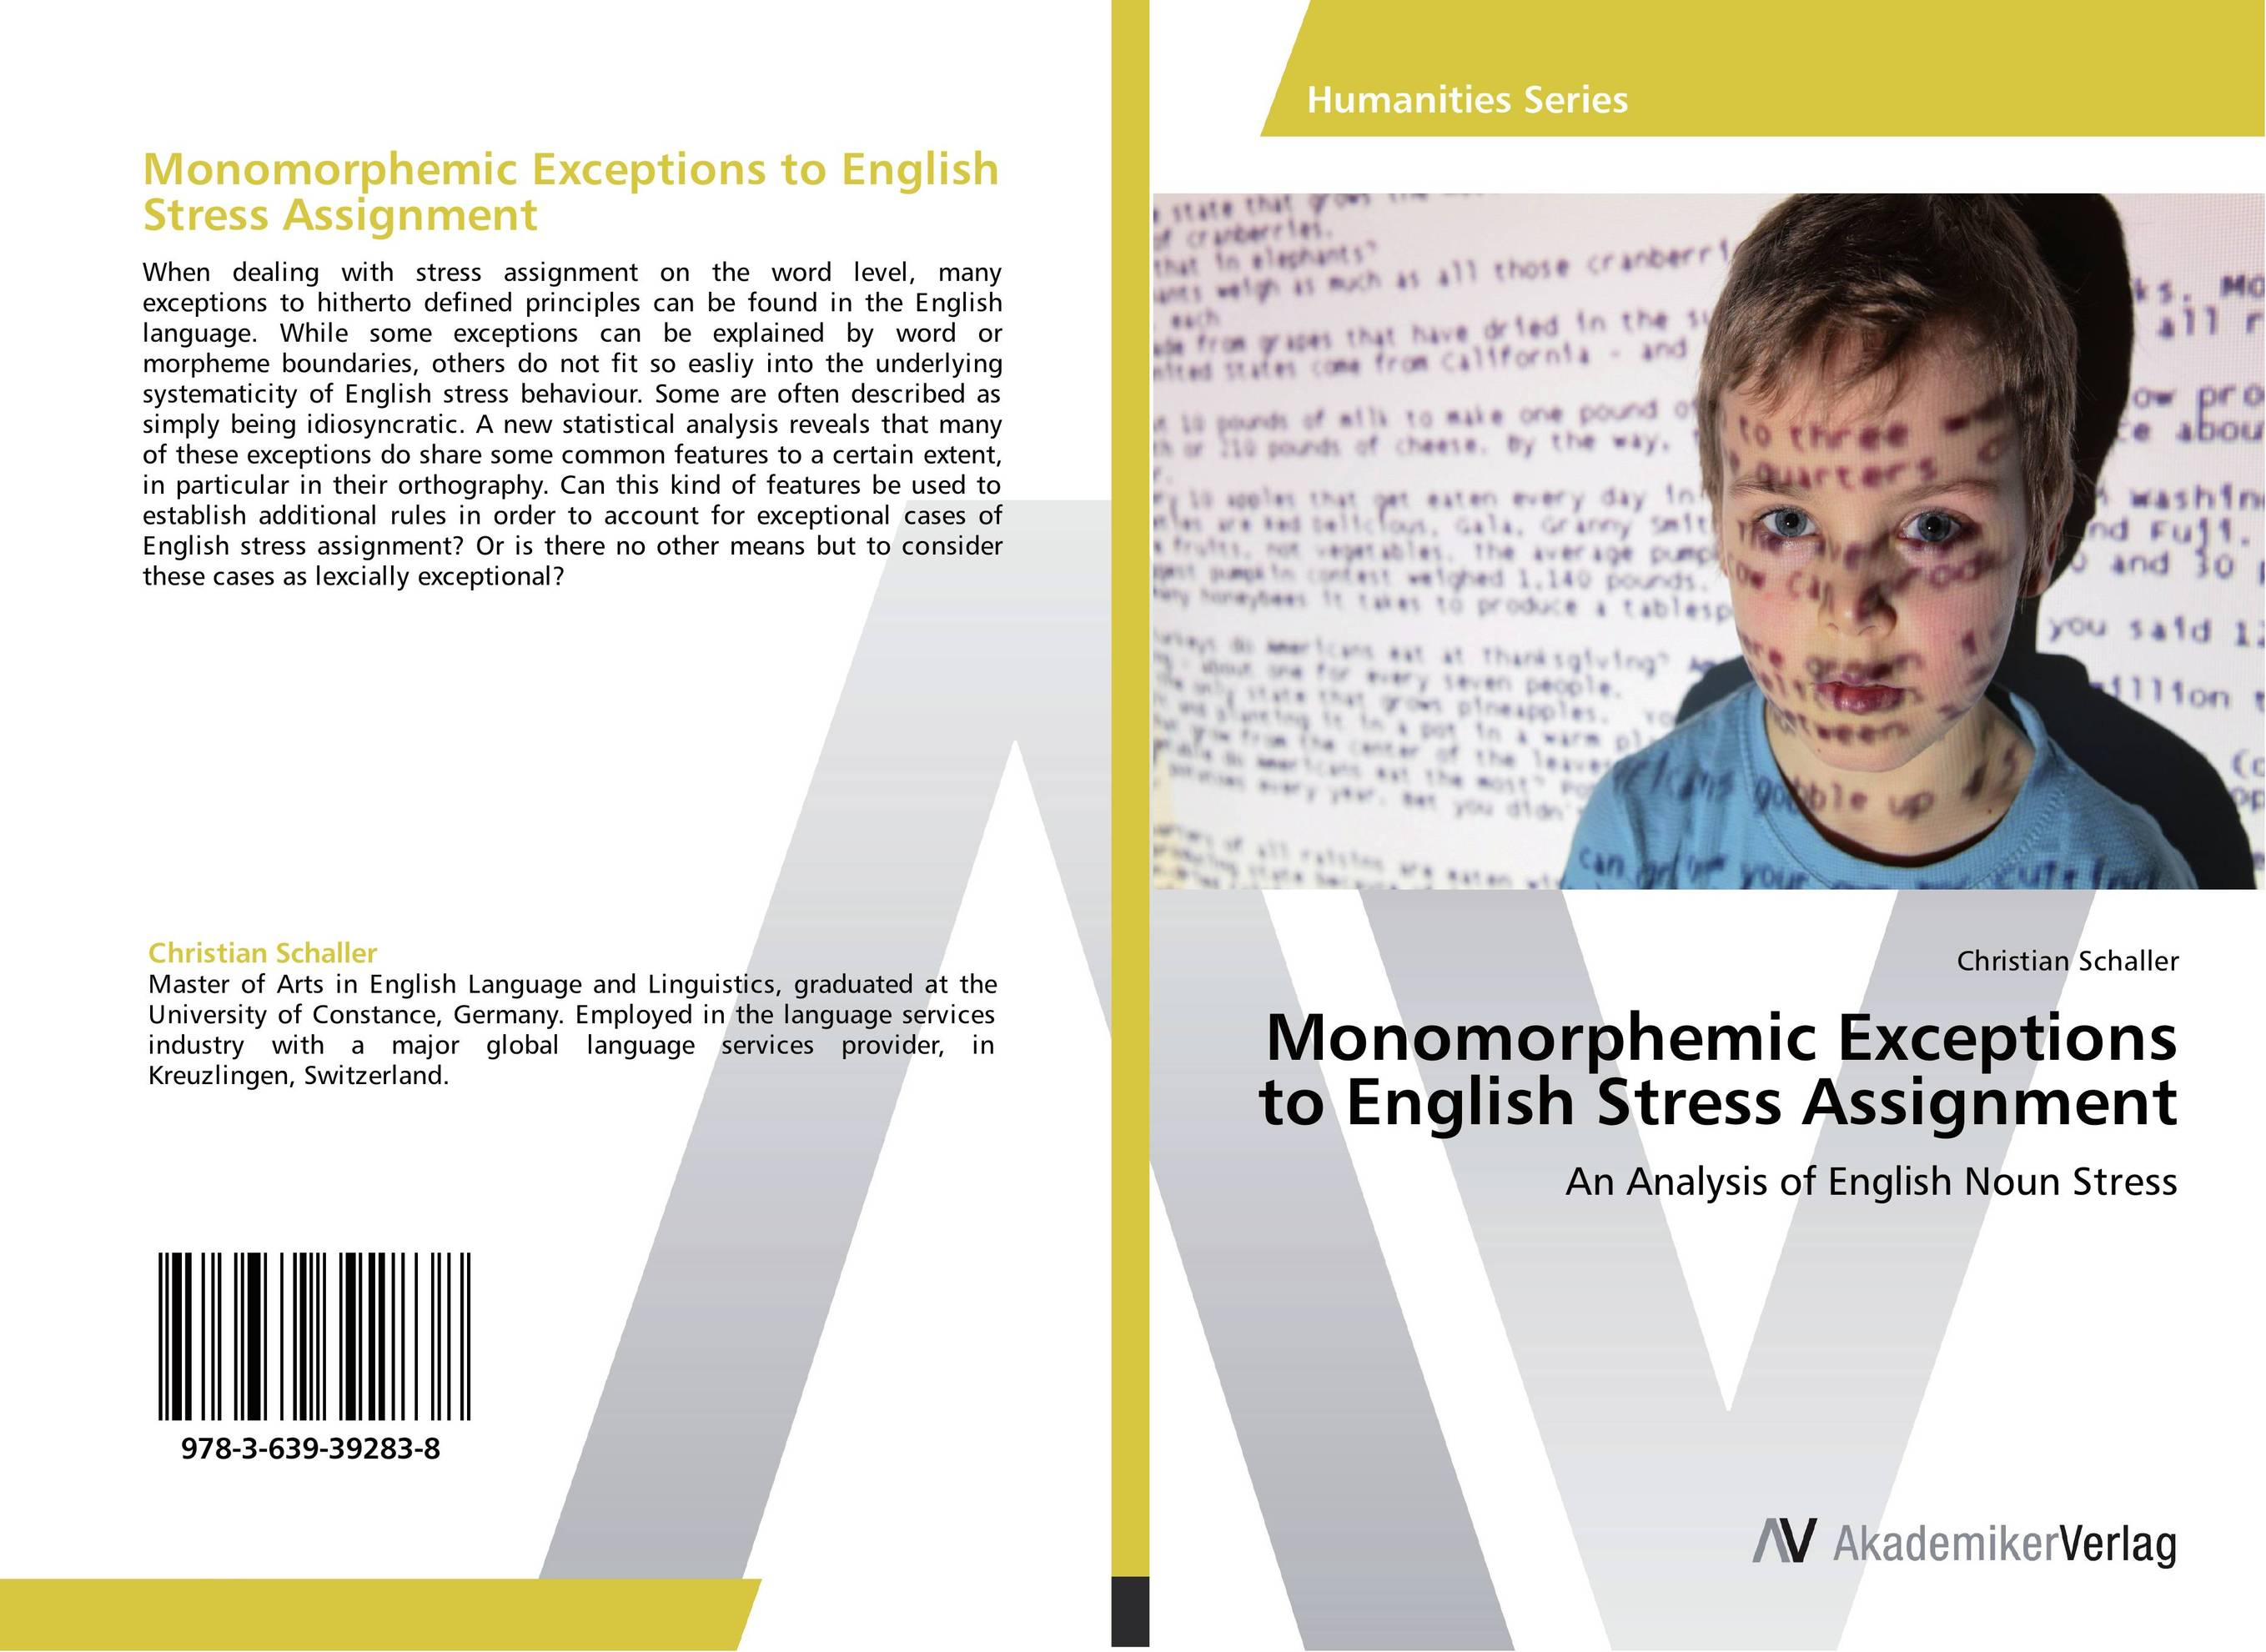 Monomorphemic Exceptions to English Stress Assignment